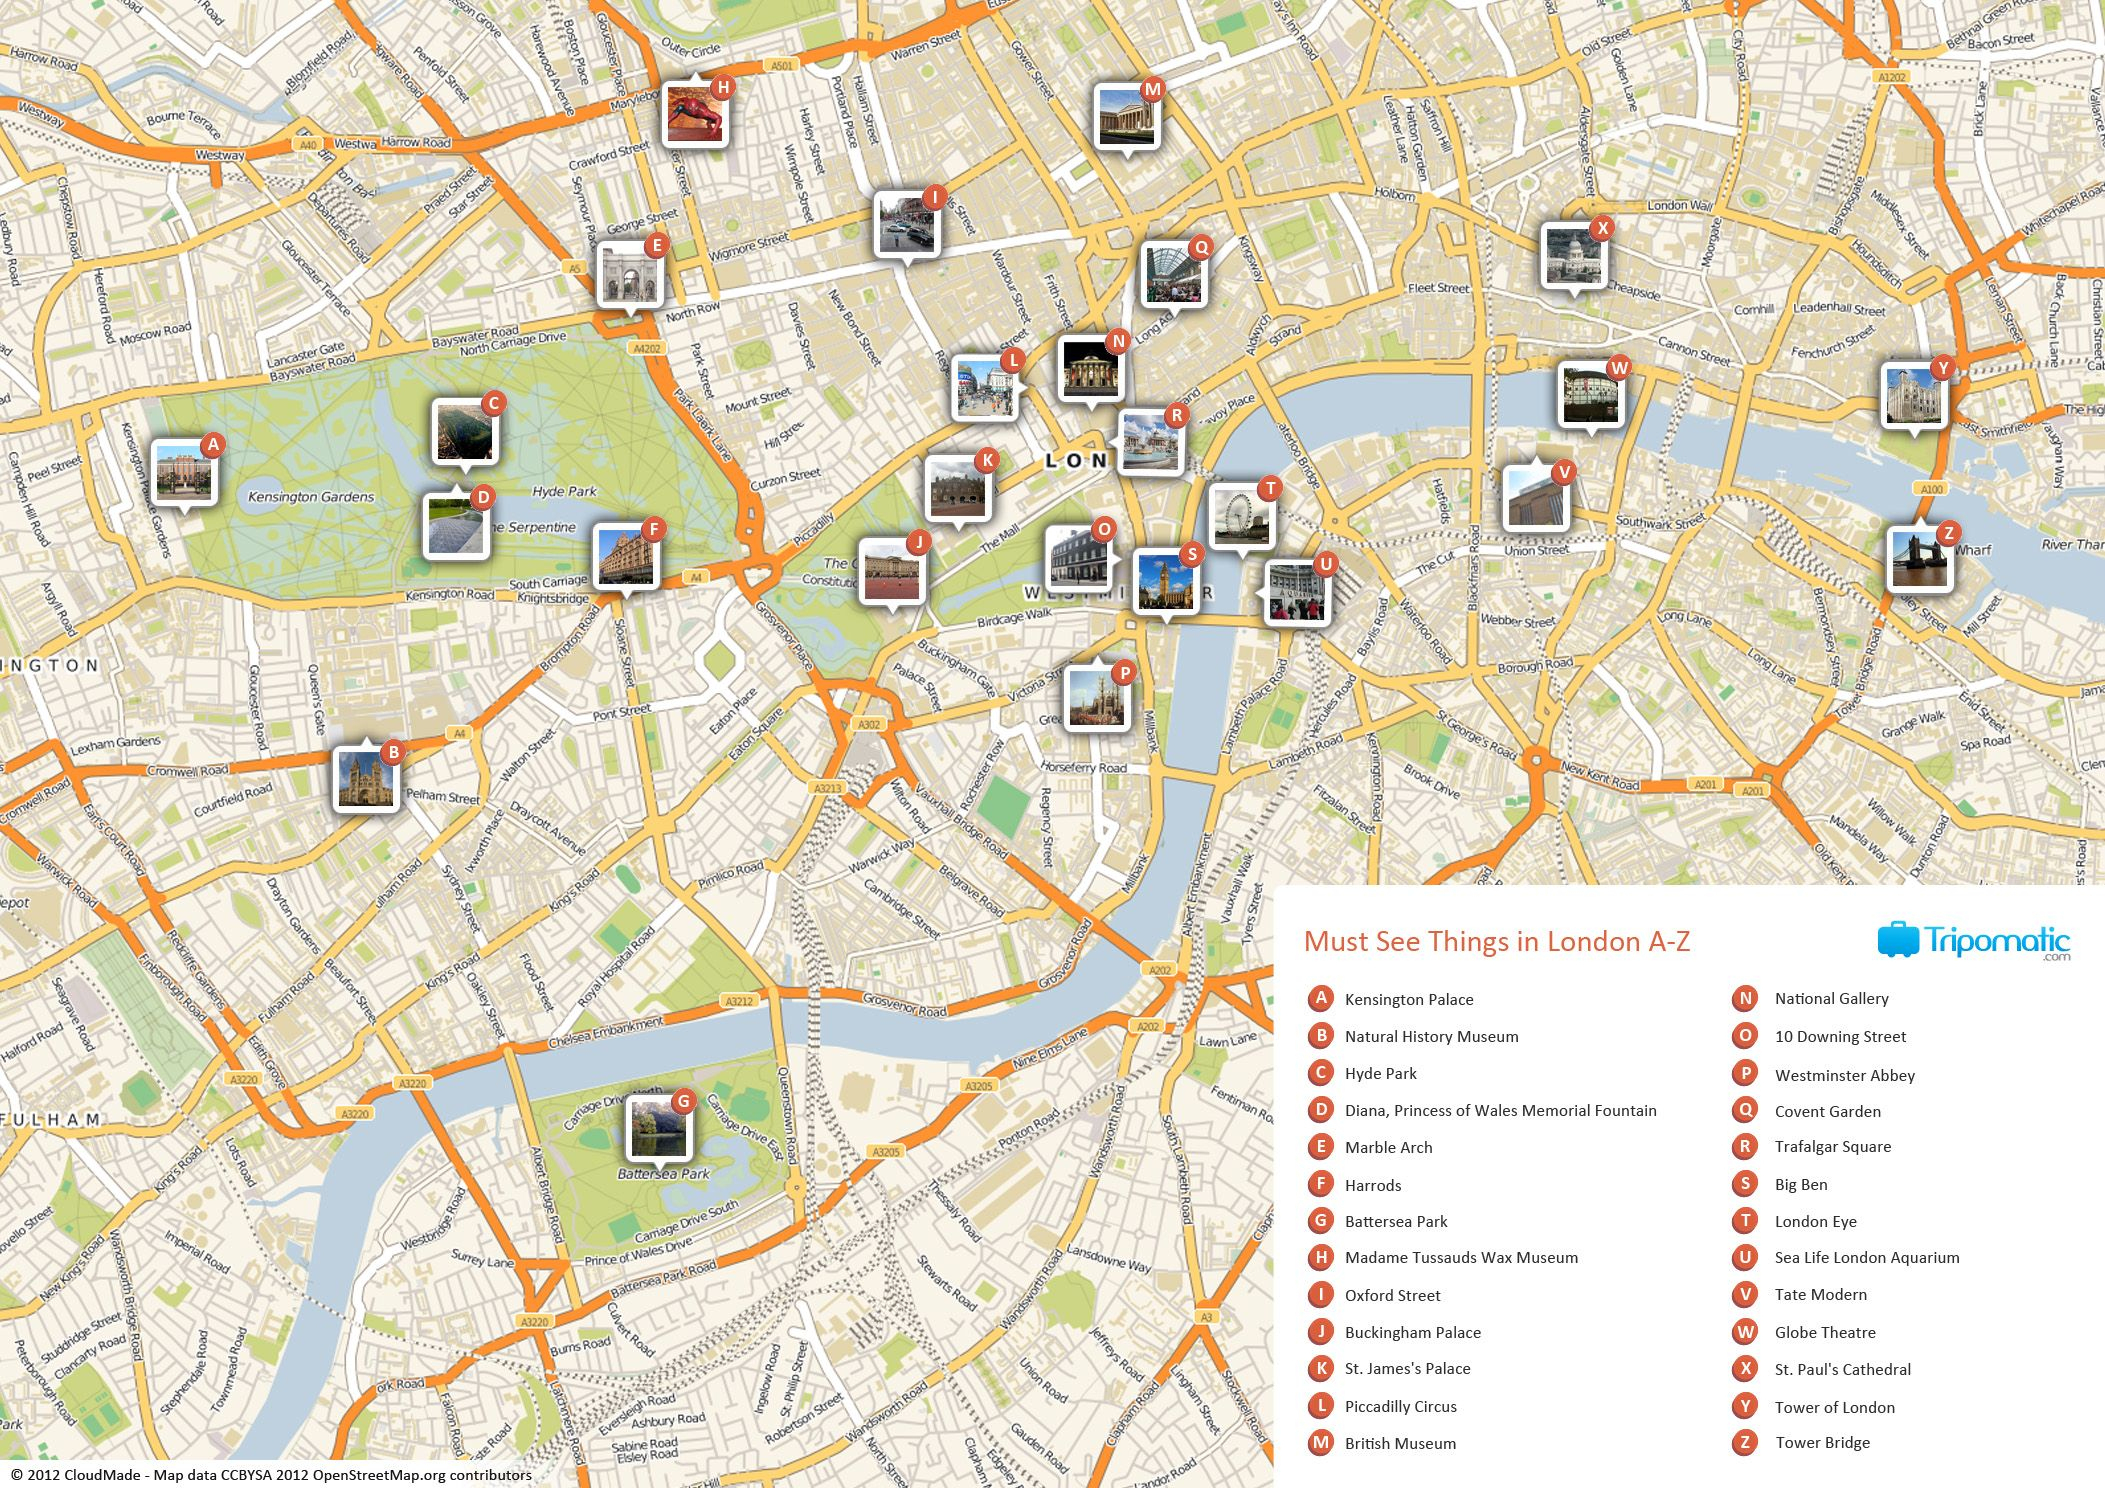 Map Of London With Must See Sights And Attractions. Free Printable - Printable Map Of London With Attractions